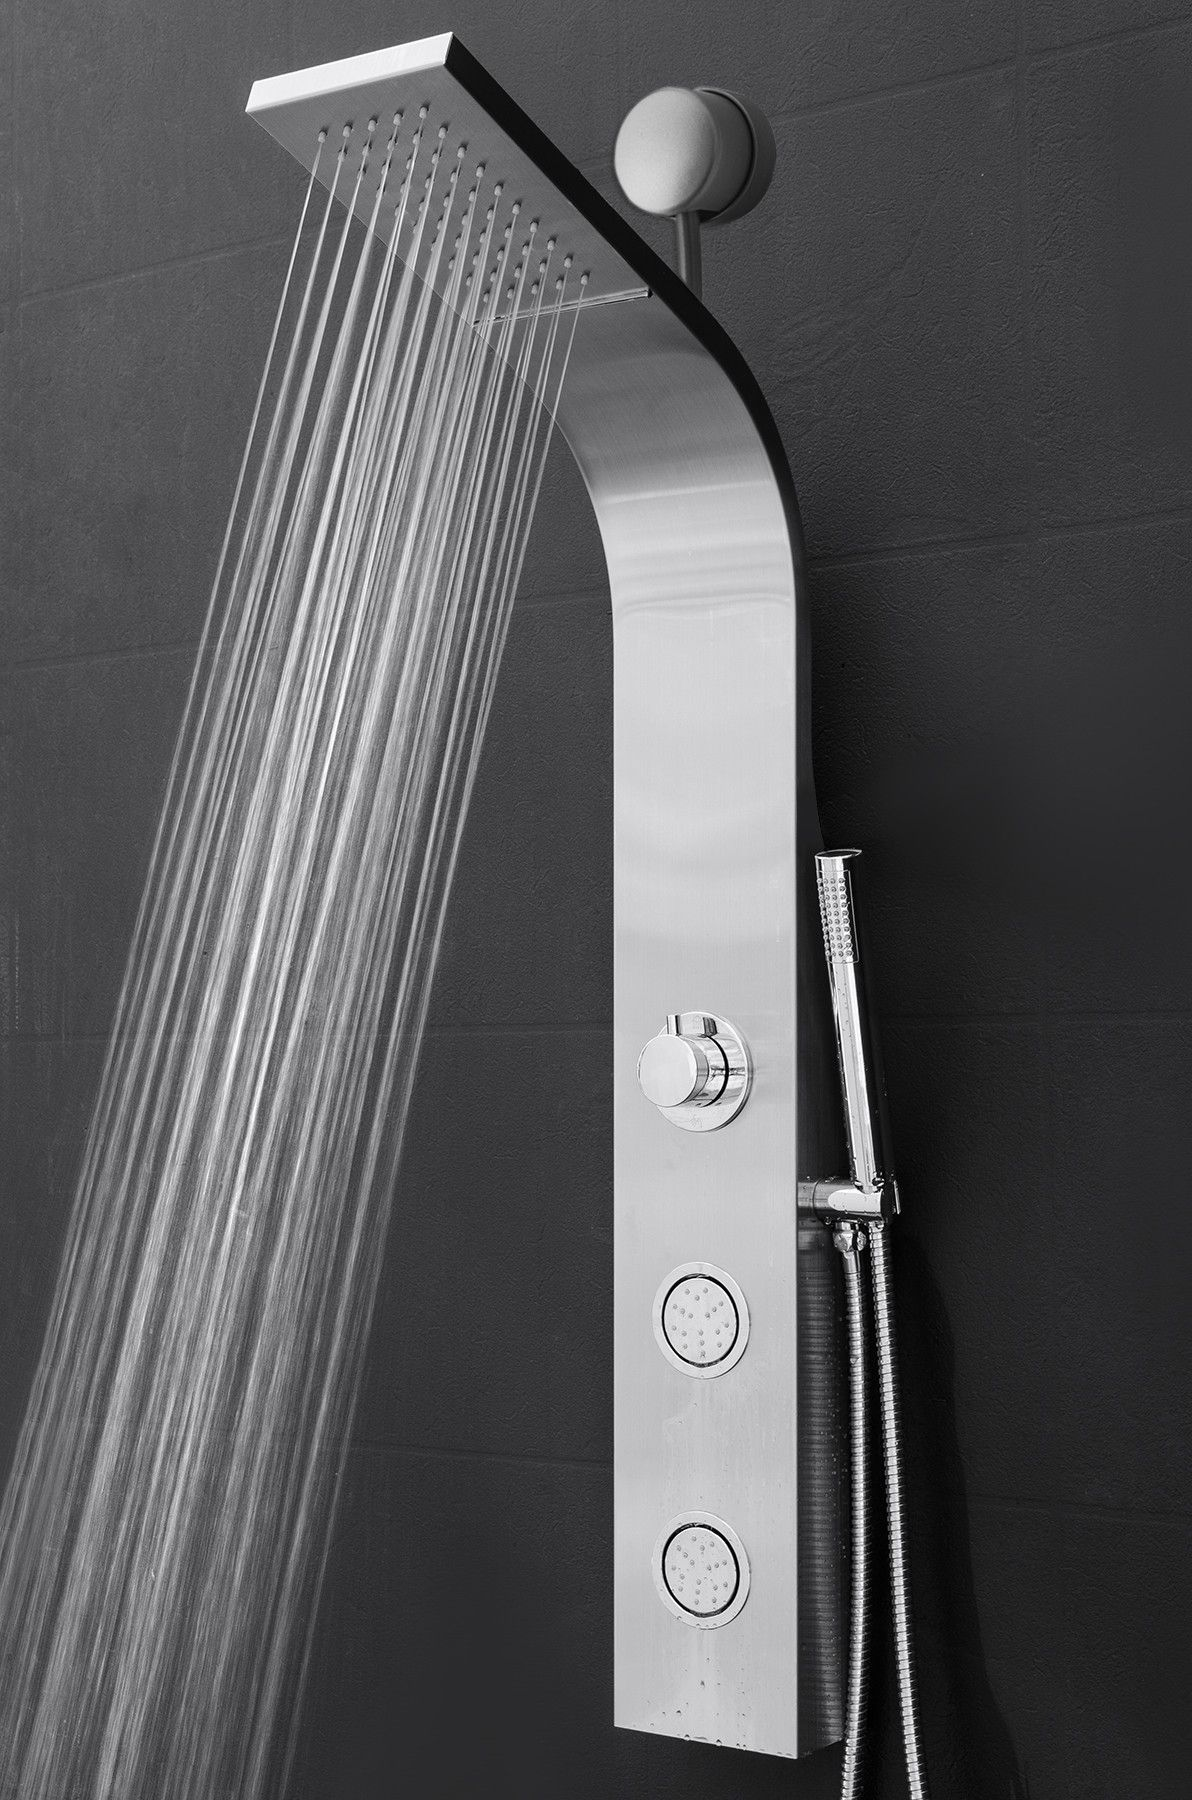 Thermostatic 39 37 Shower Panel With Dual Shower Head Shower Panels Waterfall Shower Shower Heads